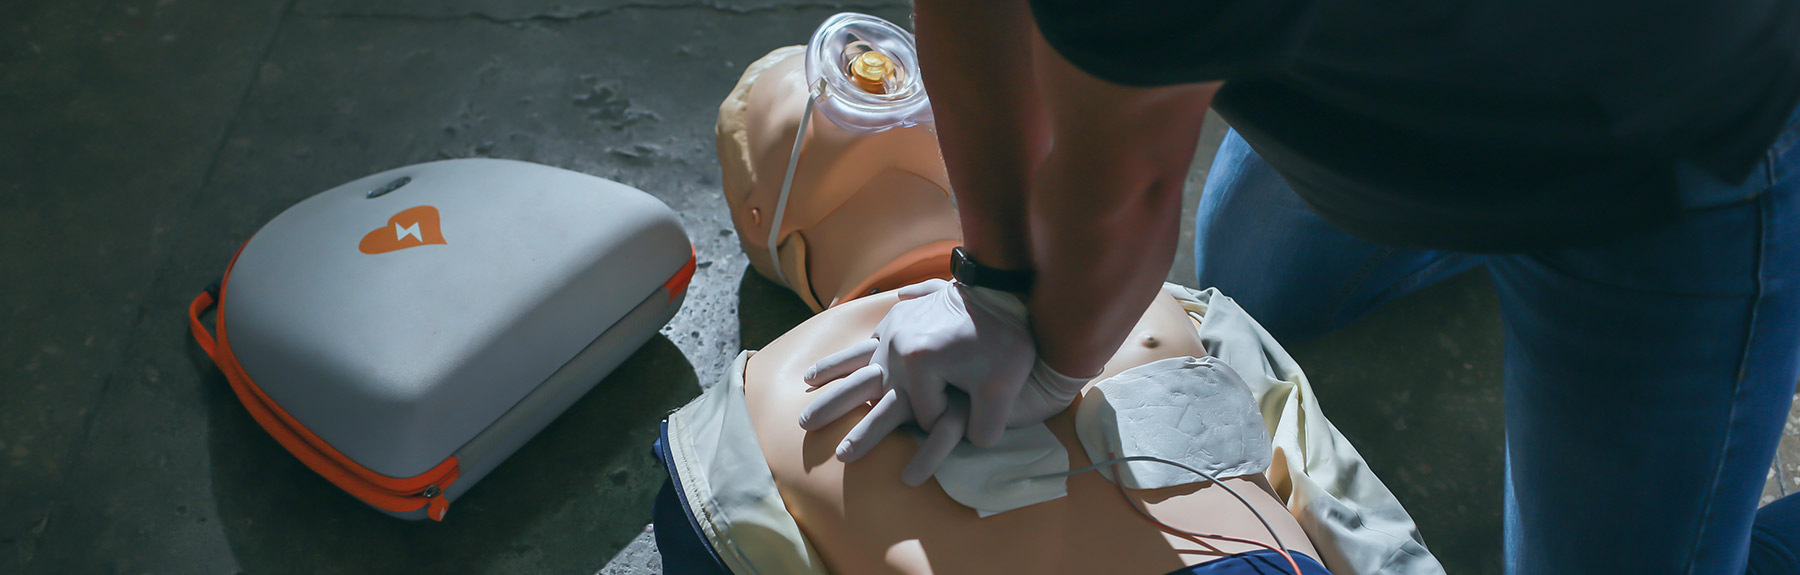 Heartsaver® (First Aid) Certification